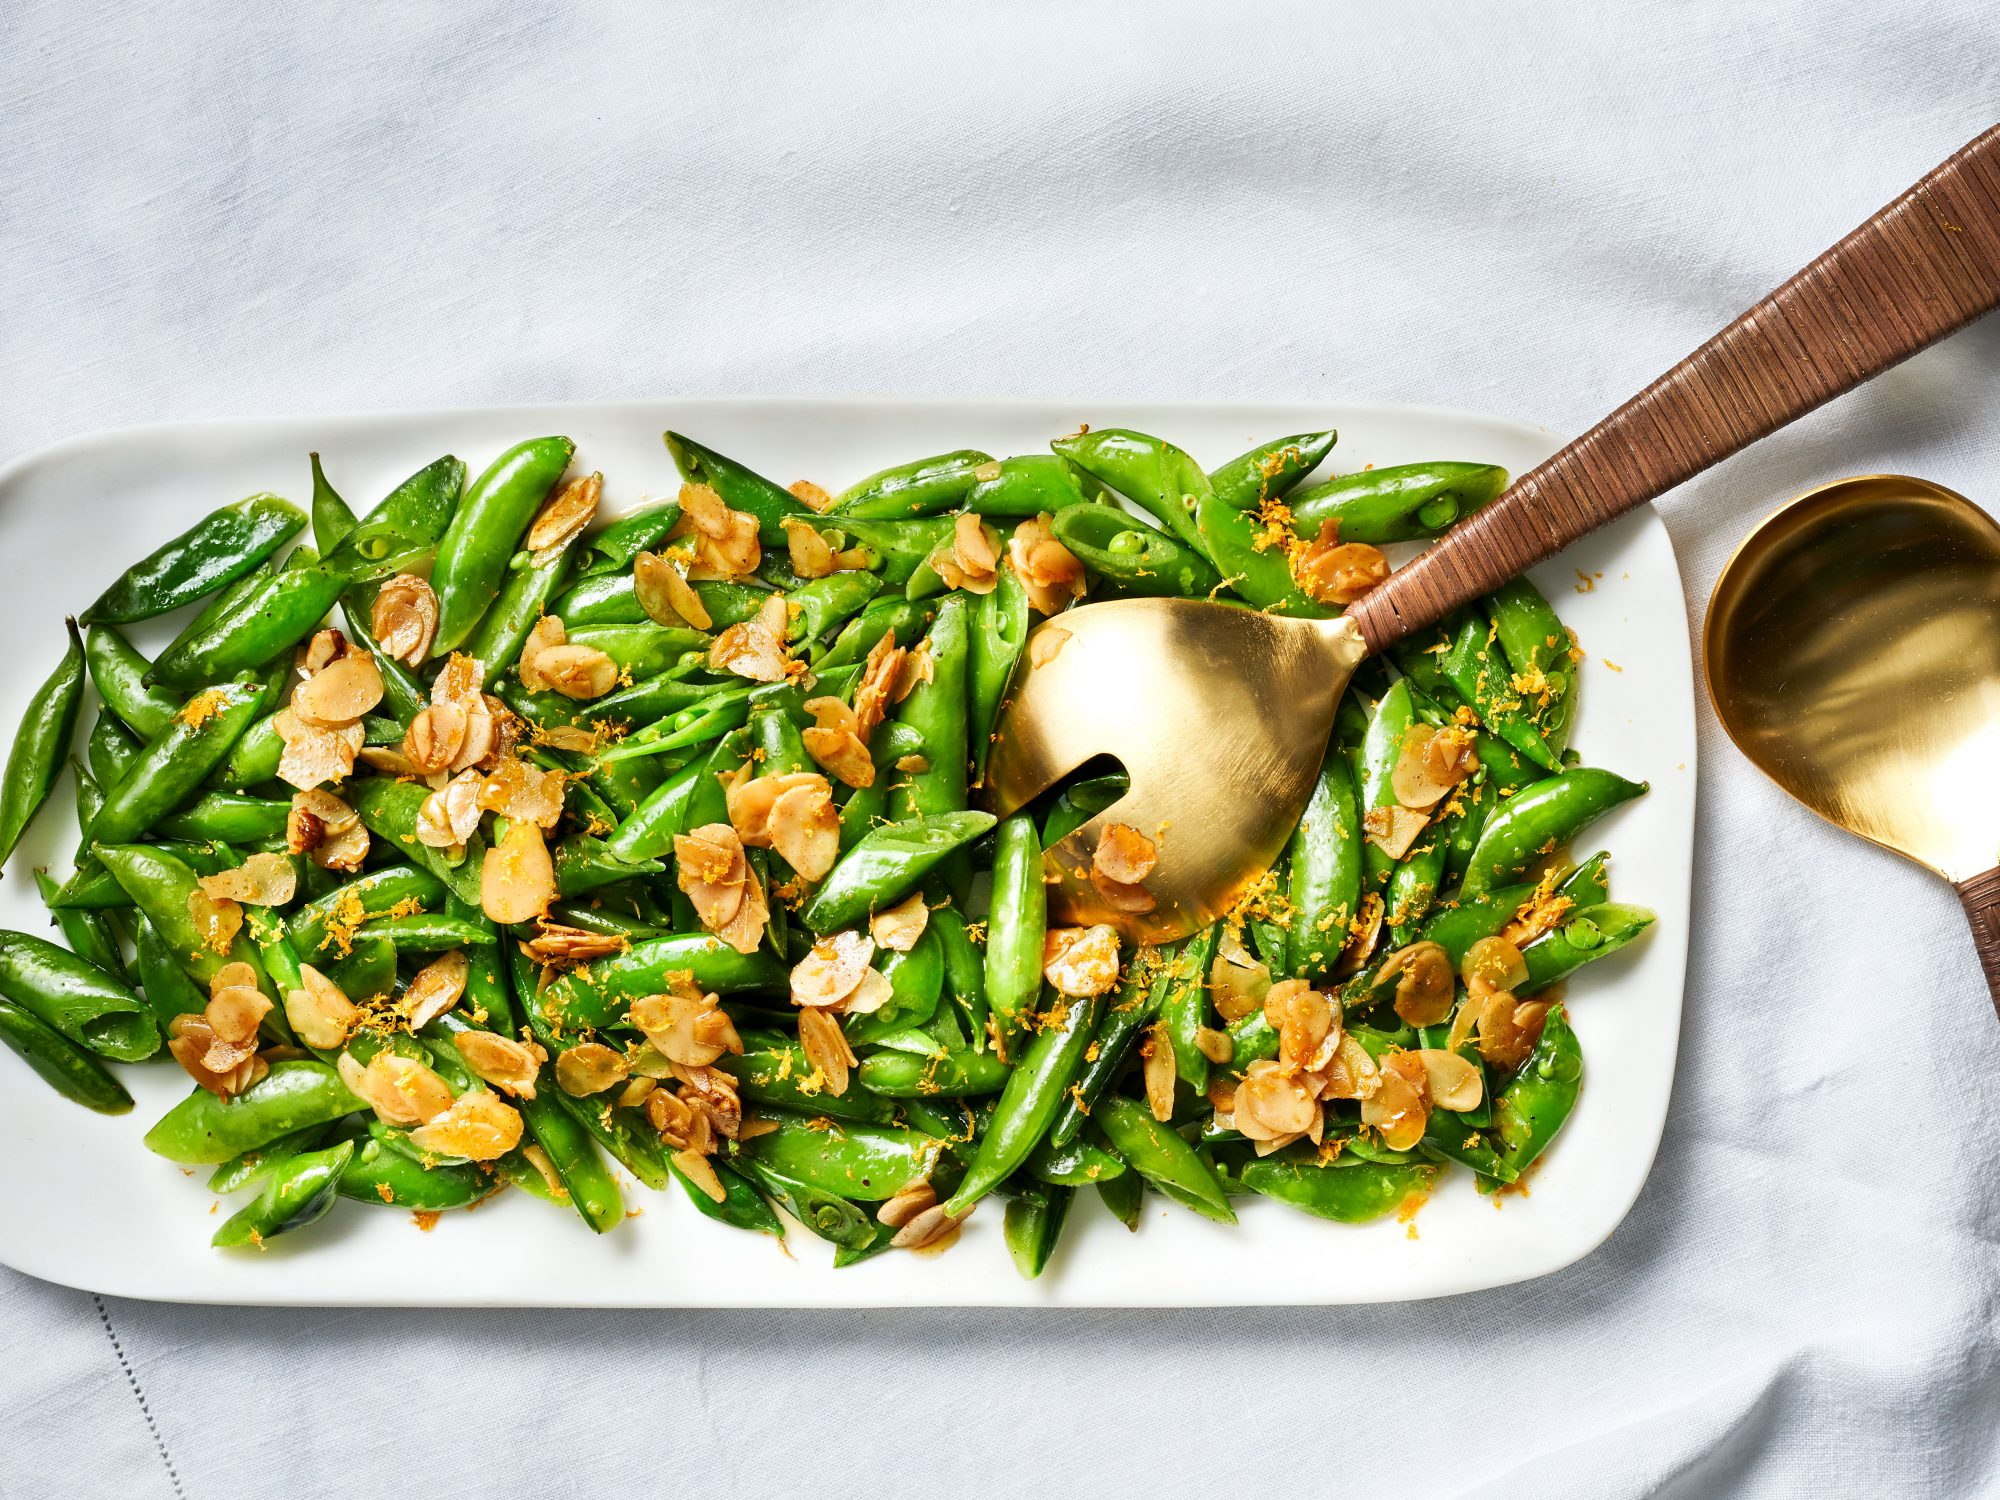 Sautéed Sugar Snap Peas with Orange Zest and Buttery Almonds